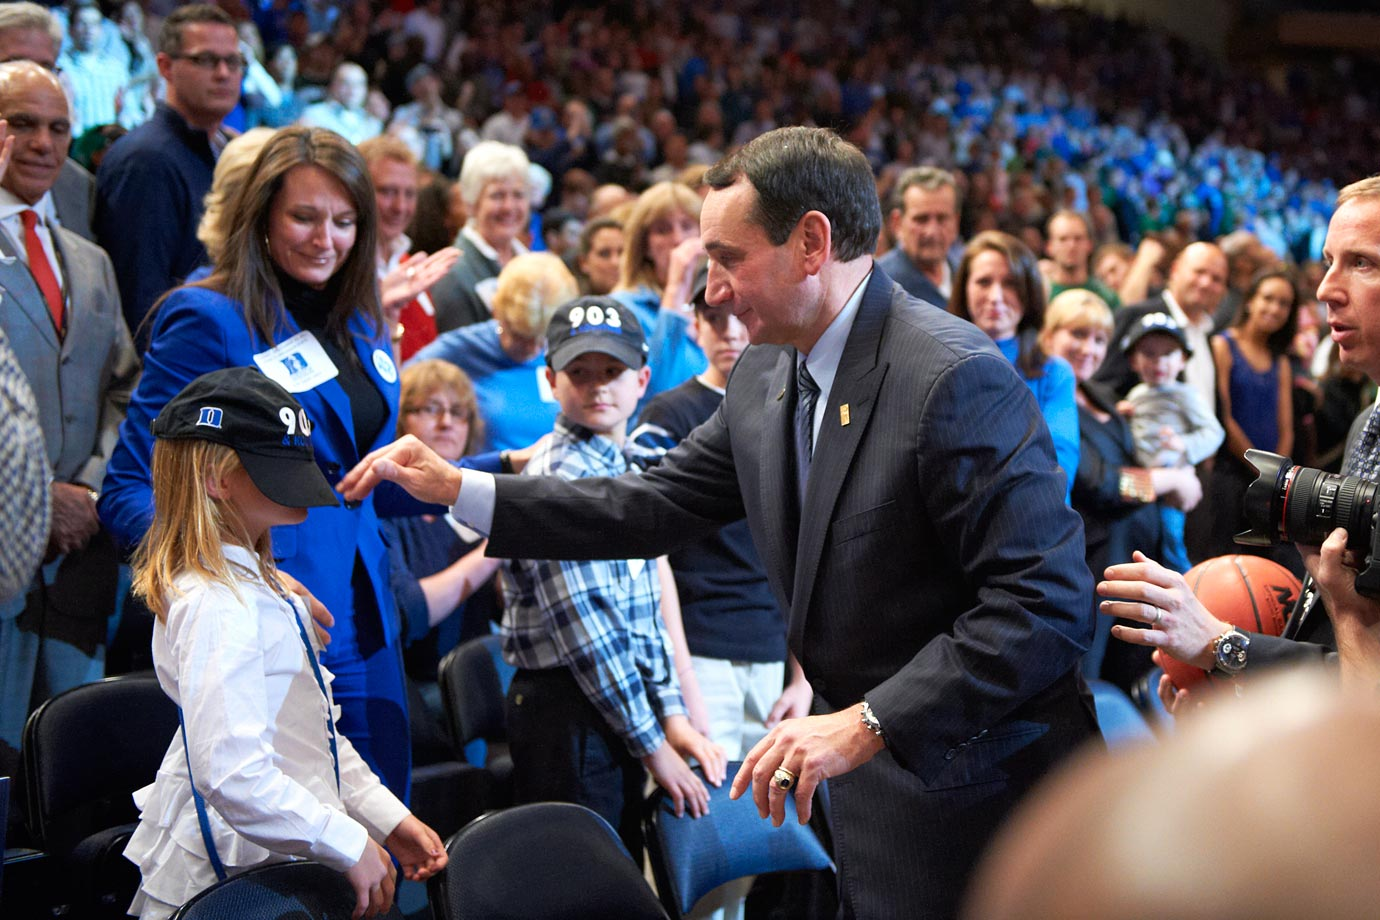 Mike Krzyzewski has a little fun with a young fan after winning his 903rd game to become the all time winningest men's coach in 2011 at Madison Square Garden. Duke defeated Michigan State 74-69.